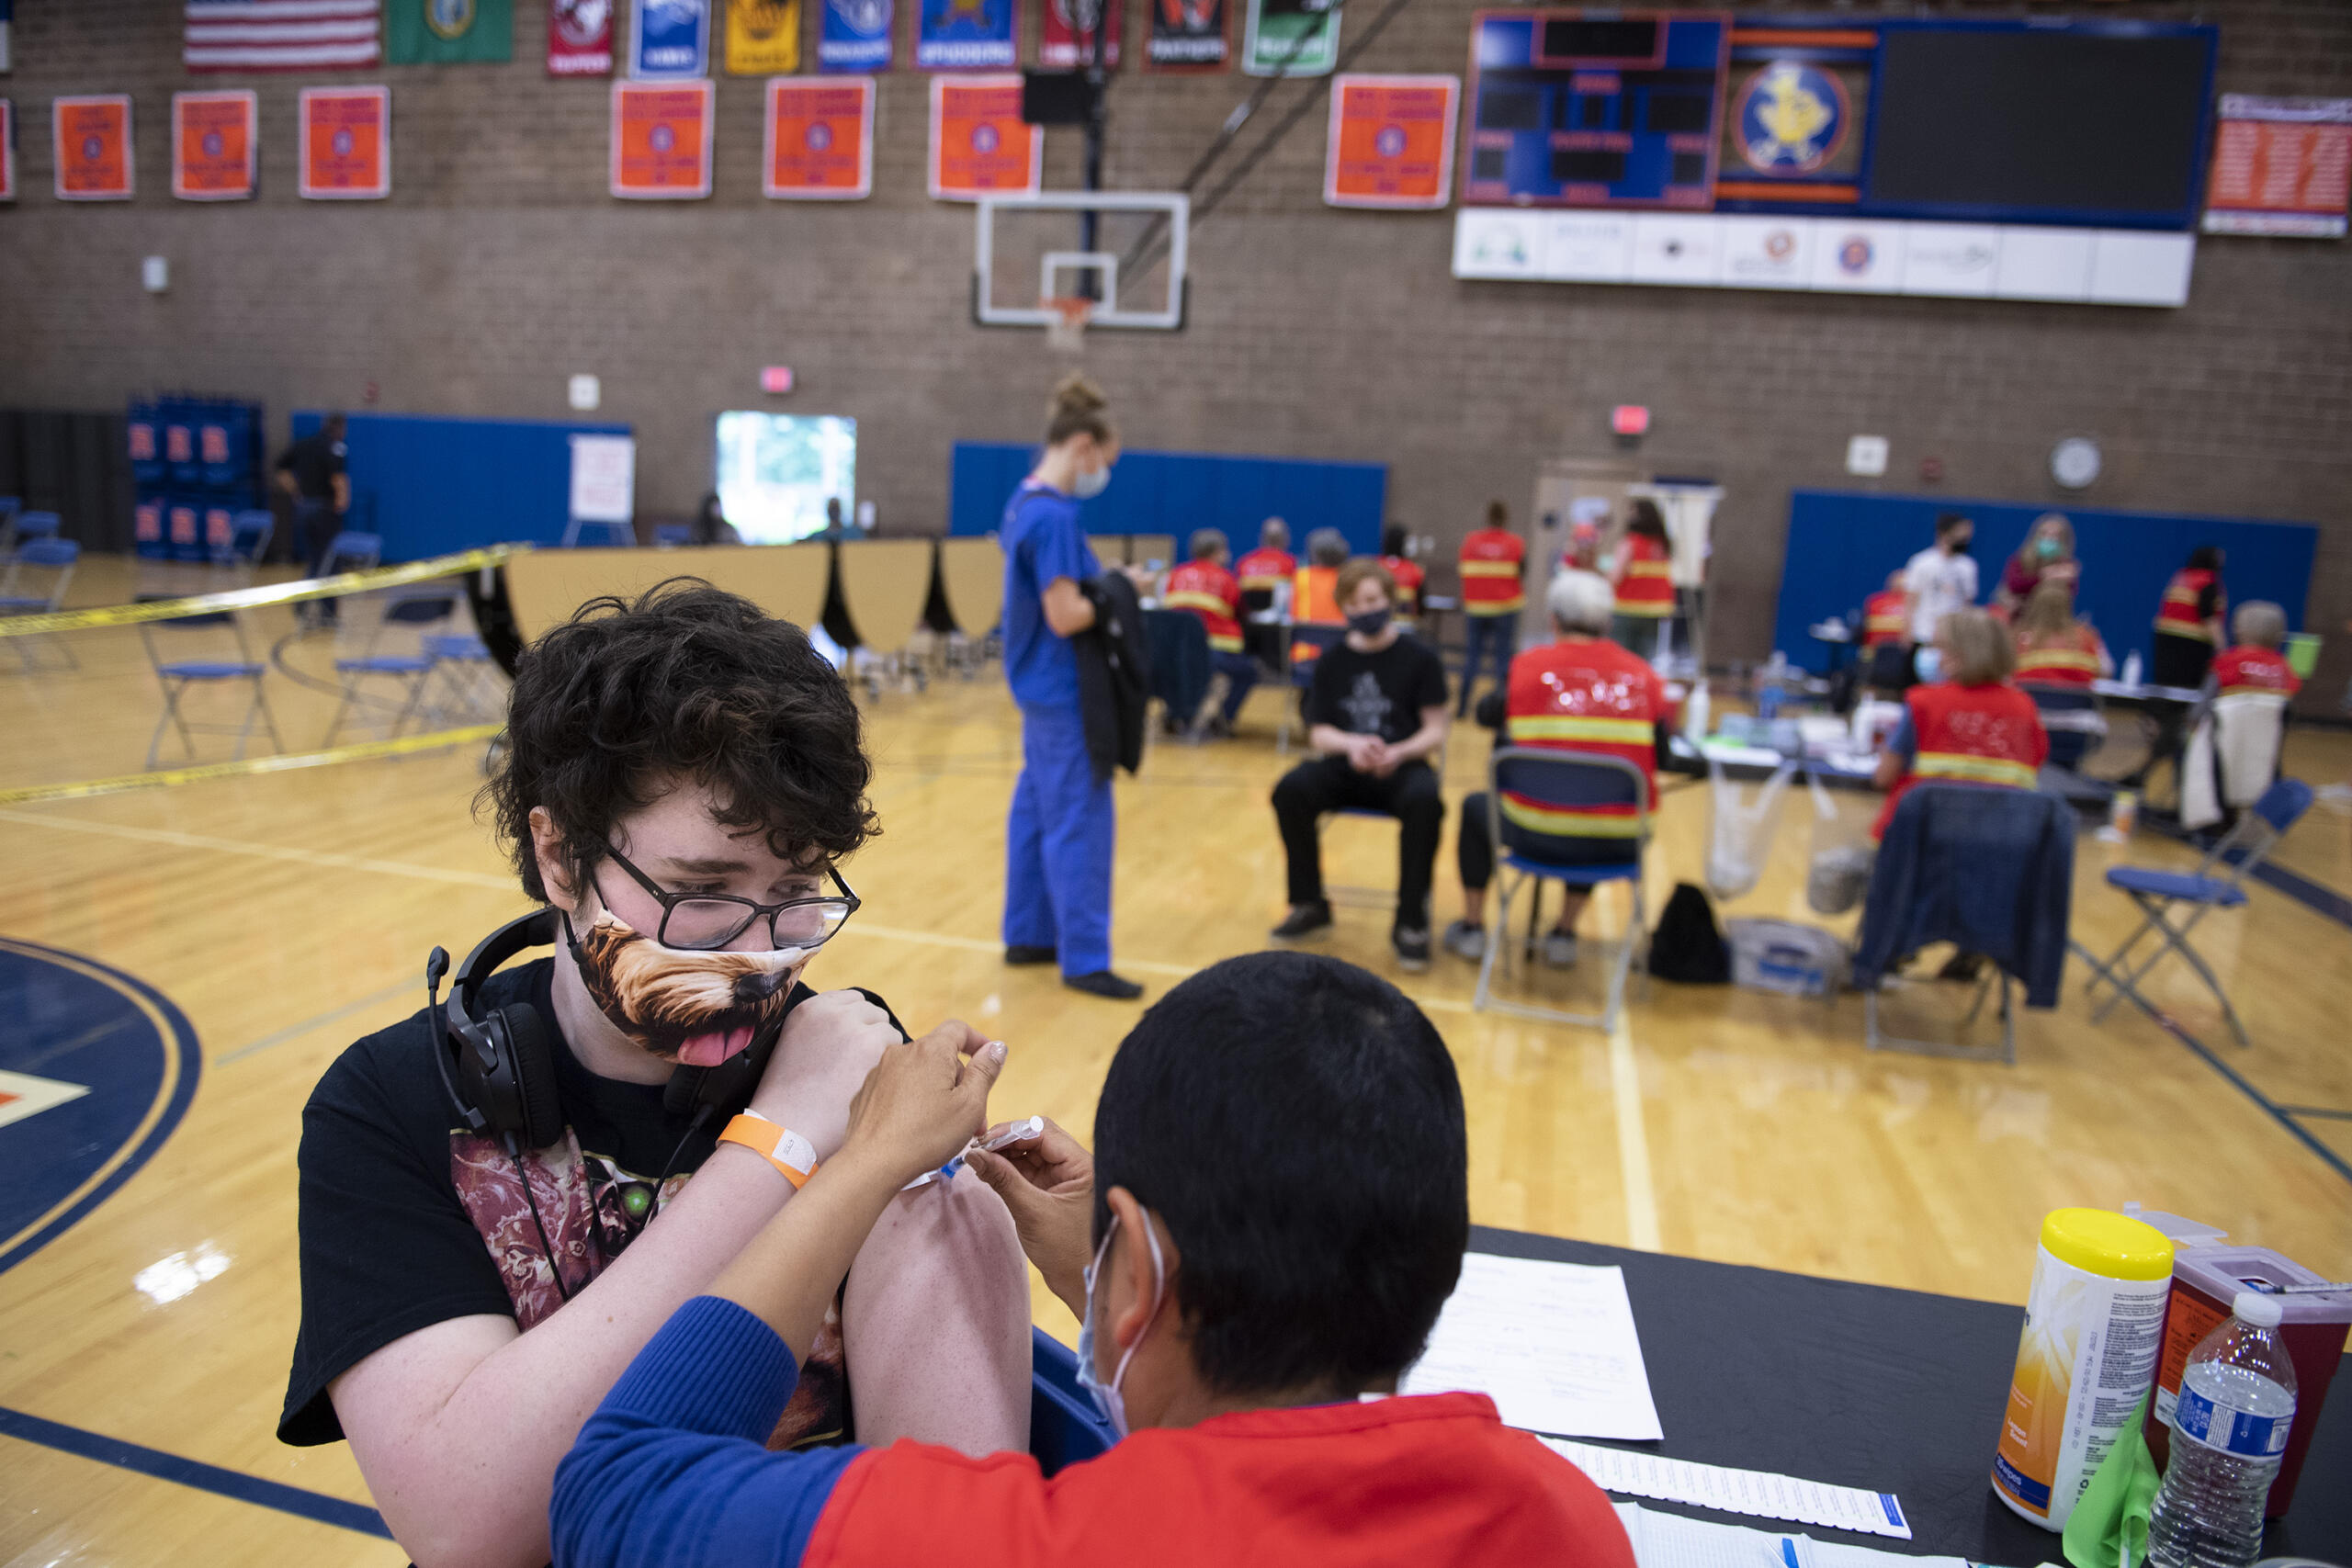 Ridgefield High School sophomore William Lewis, 16, left, wears a dog-themed mask as he receives his COVID-19 vaccination from pharmacist Estela Clemente in the school's gym on Wednesday morning, May 26, 2021. The vaccination clinic, which was also open to members of the community, was organized with help from students at the school.